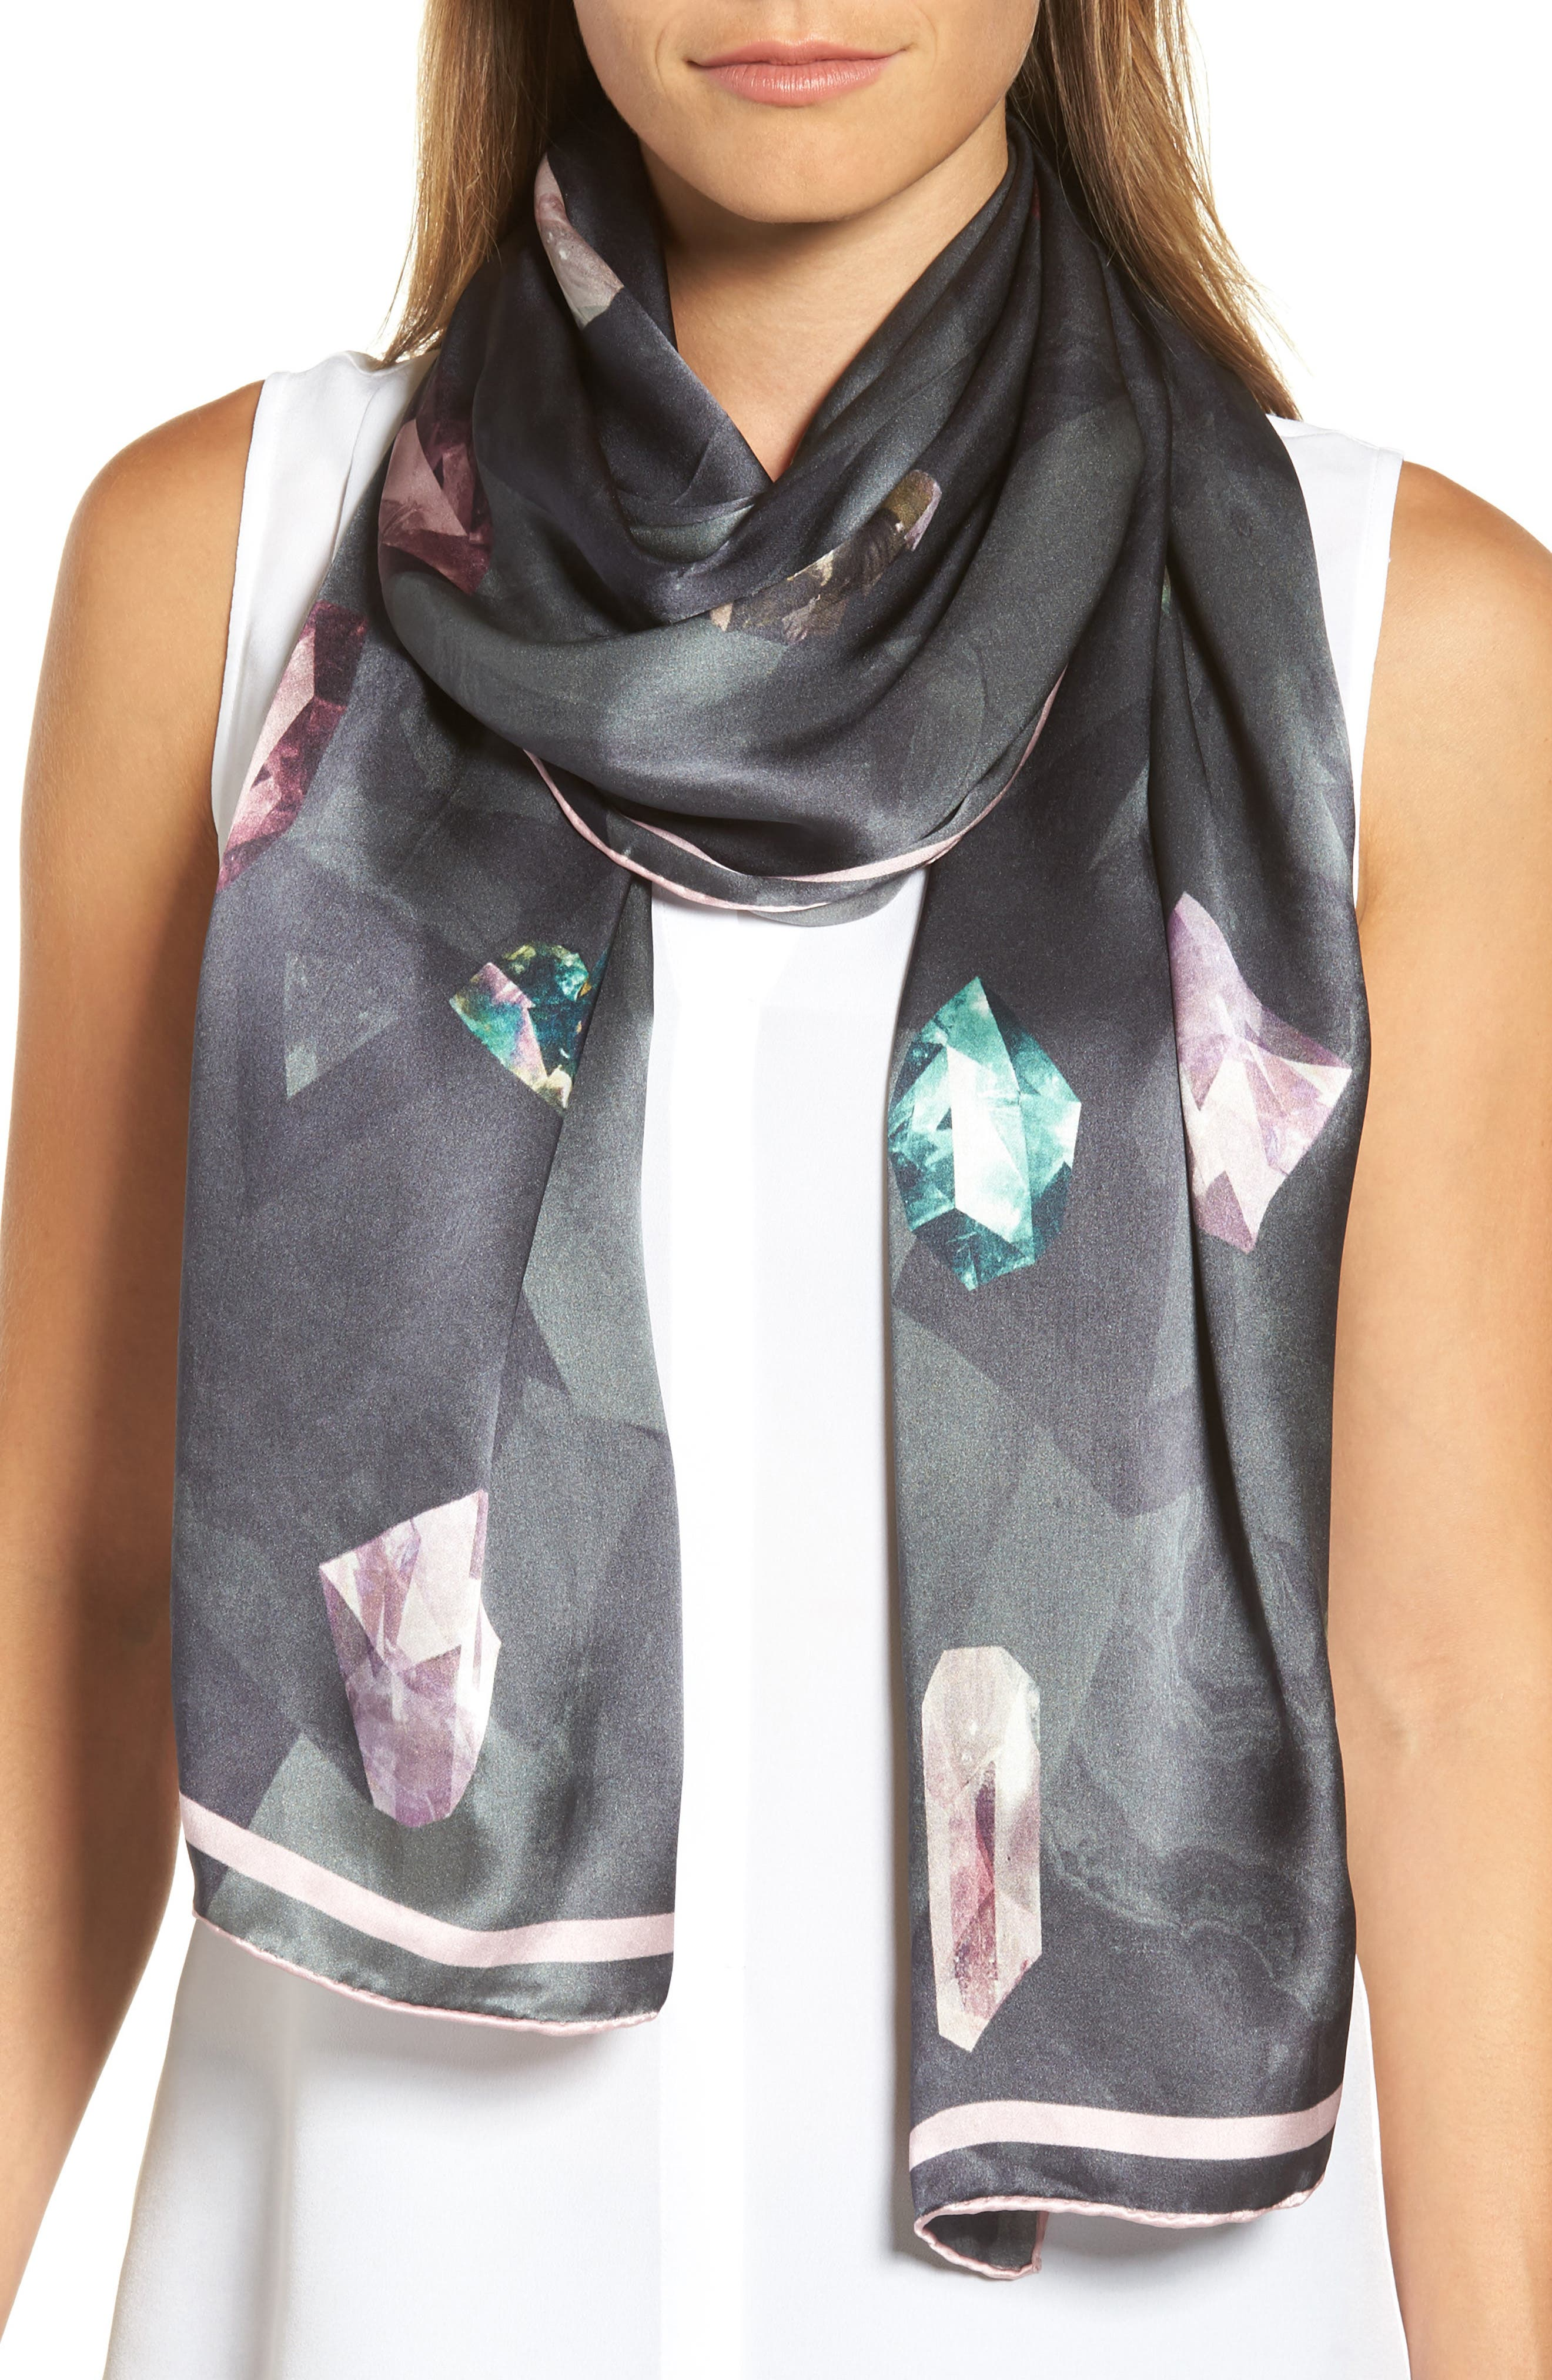 Mirrored Minerals Long Silk Scarf,                         Main,                         color, Grey